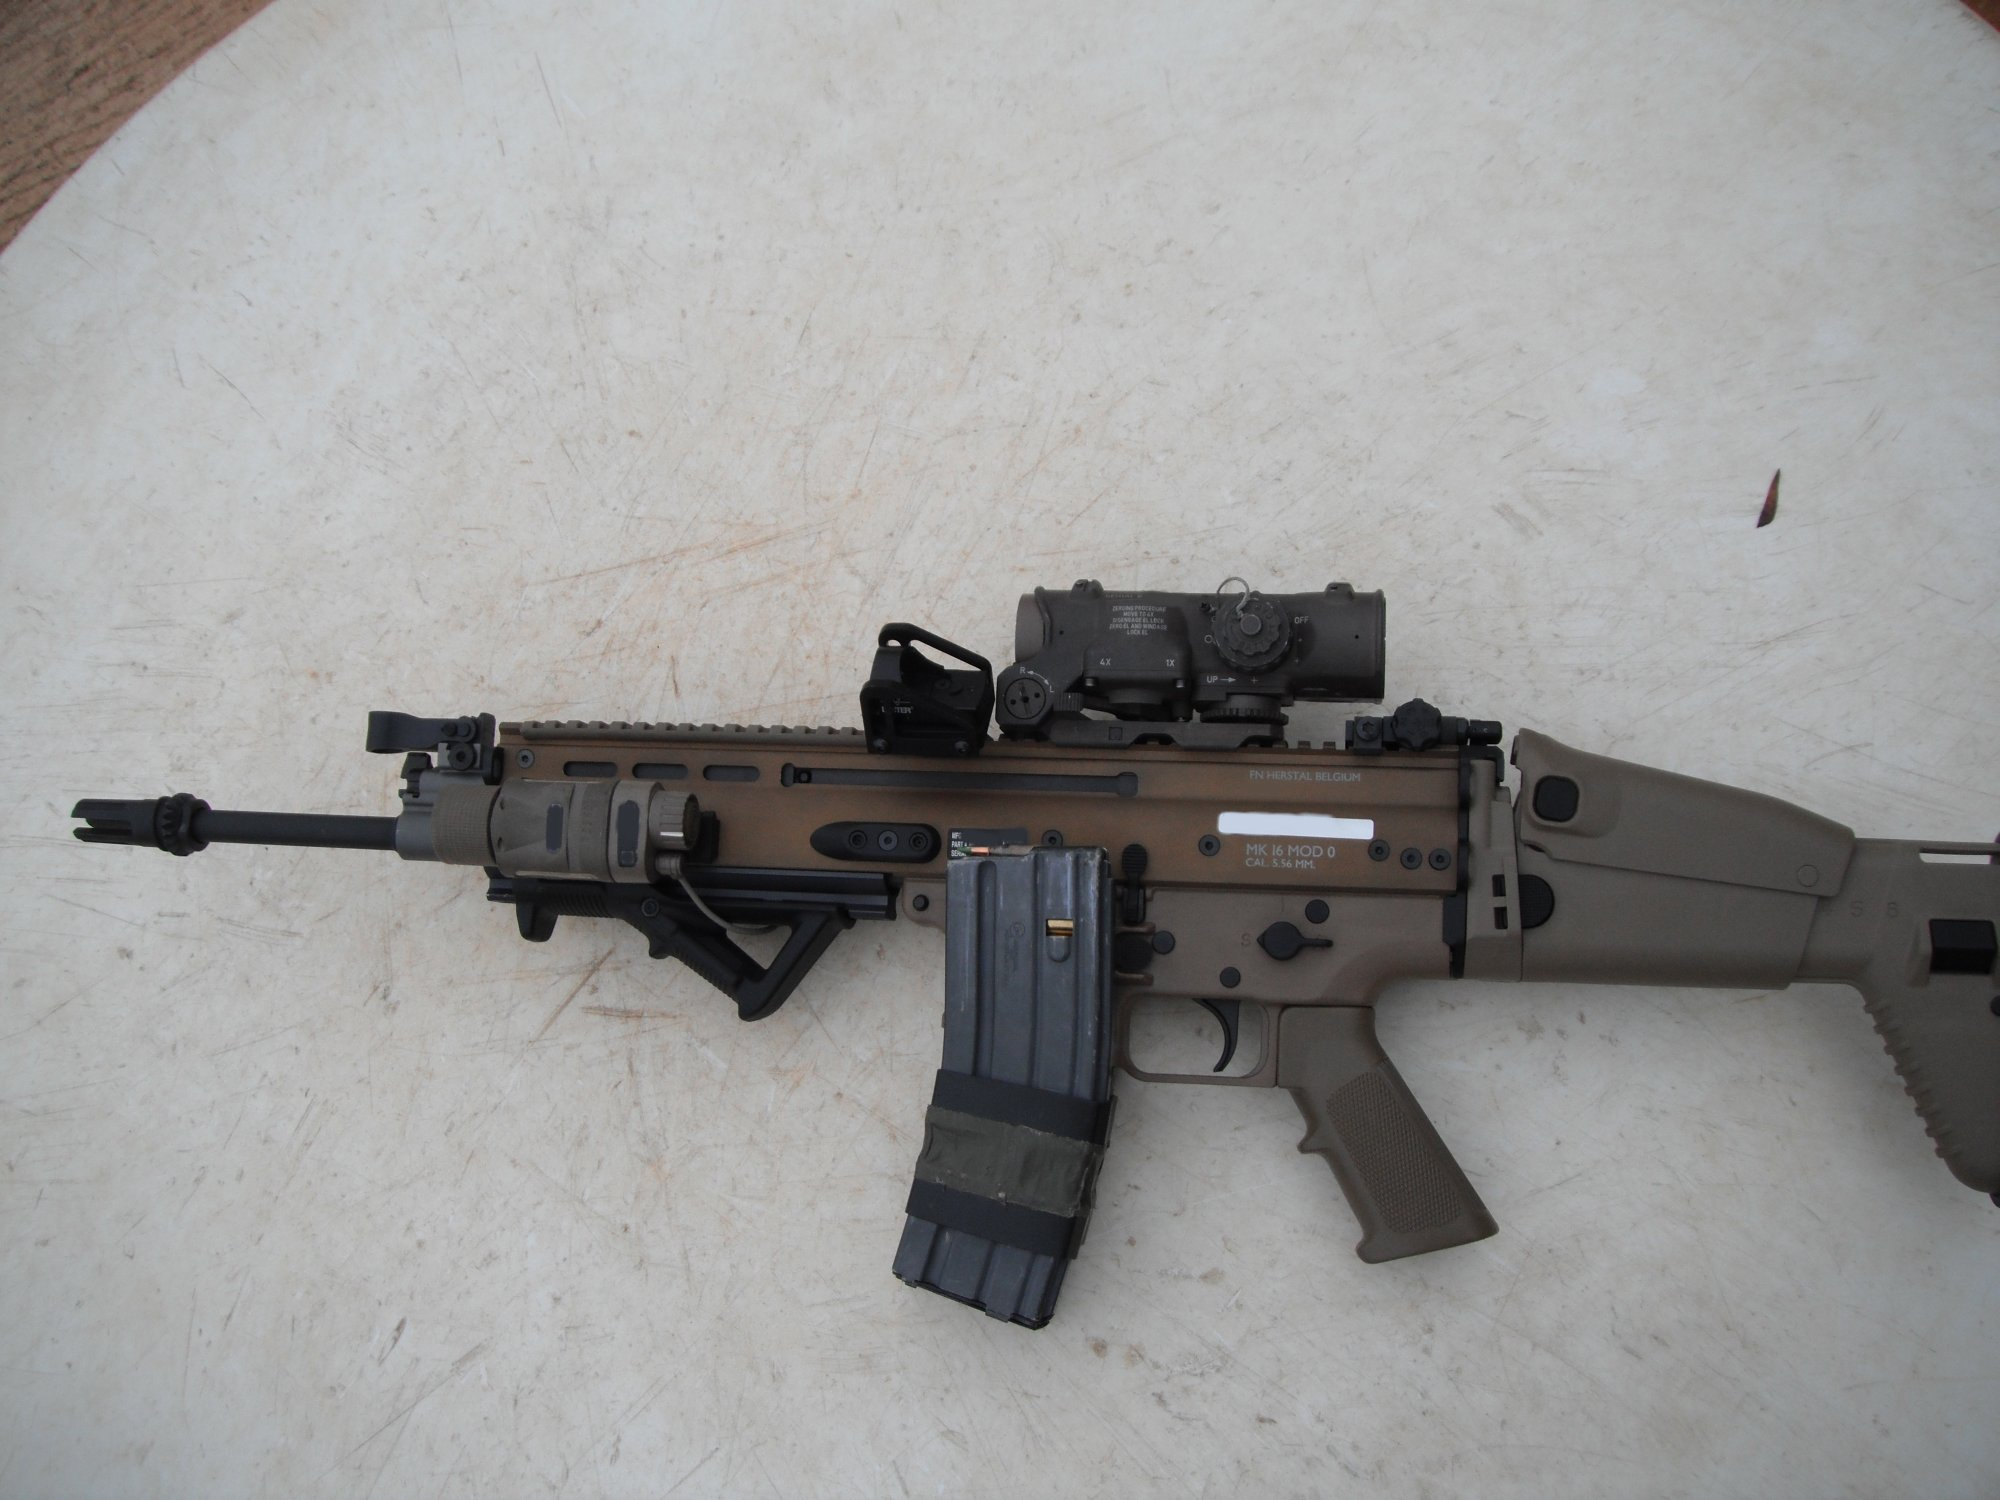 FN_SCAR_MK16_SCAR-L_Elcan_SpecterDR_and_Matt_Burkett_Offset_Mount_for_Docter_Red_Dight_Sight_Combat_Optics_1_Small